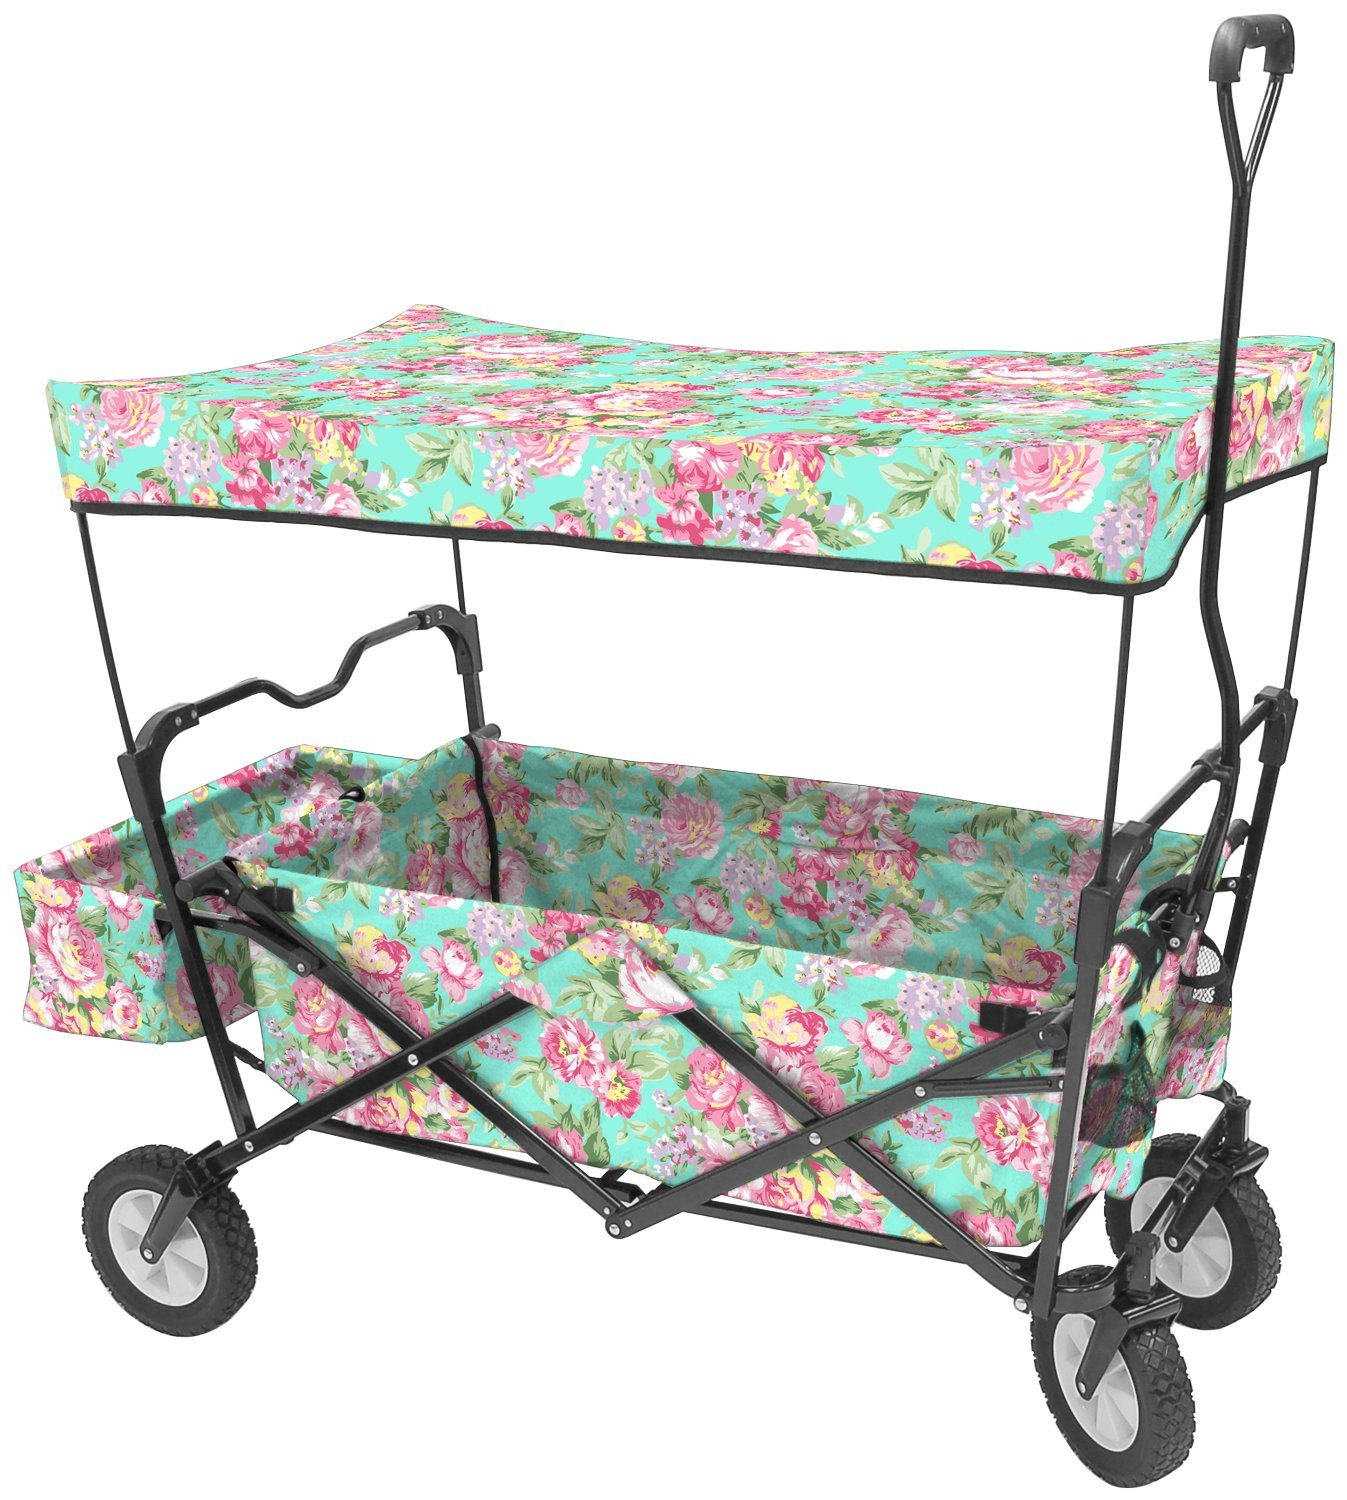 Creative Outdoor Distributors Folding Beach Wagon Floral Chair, Floral Pattern